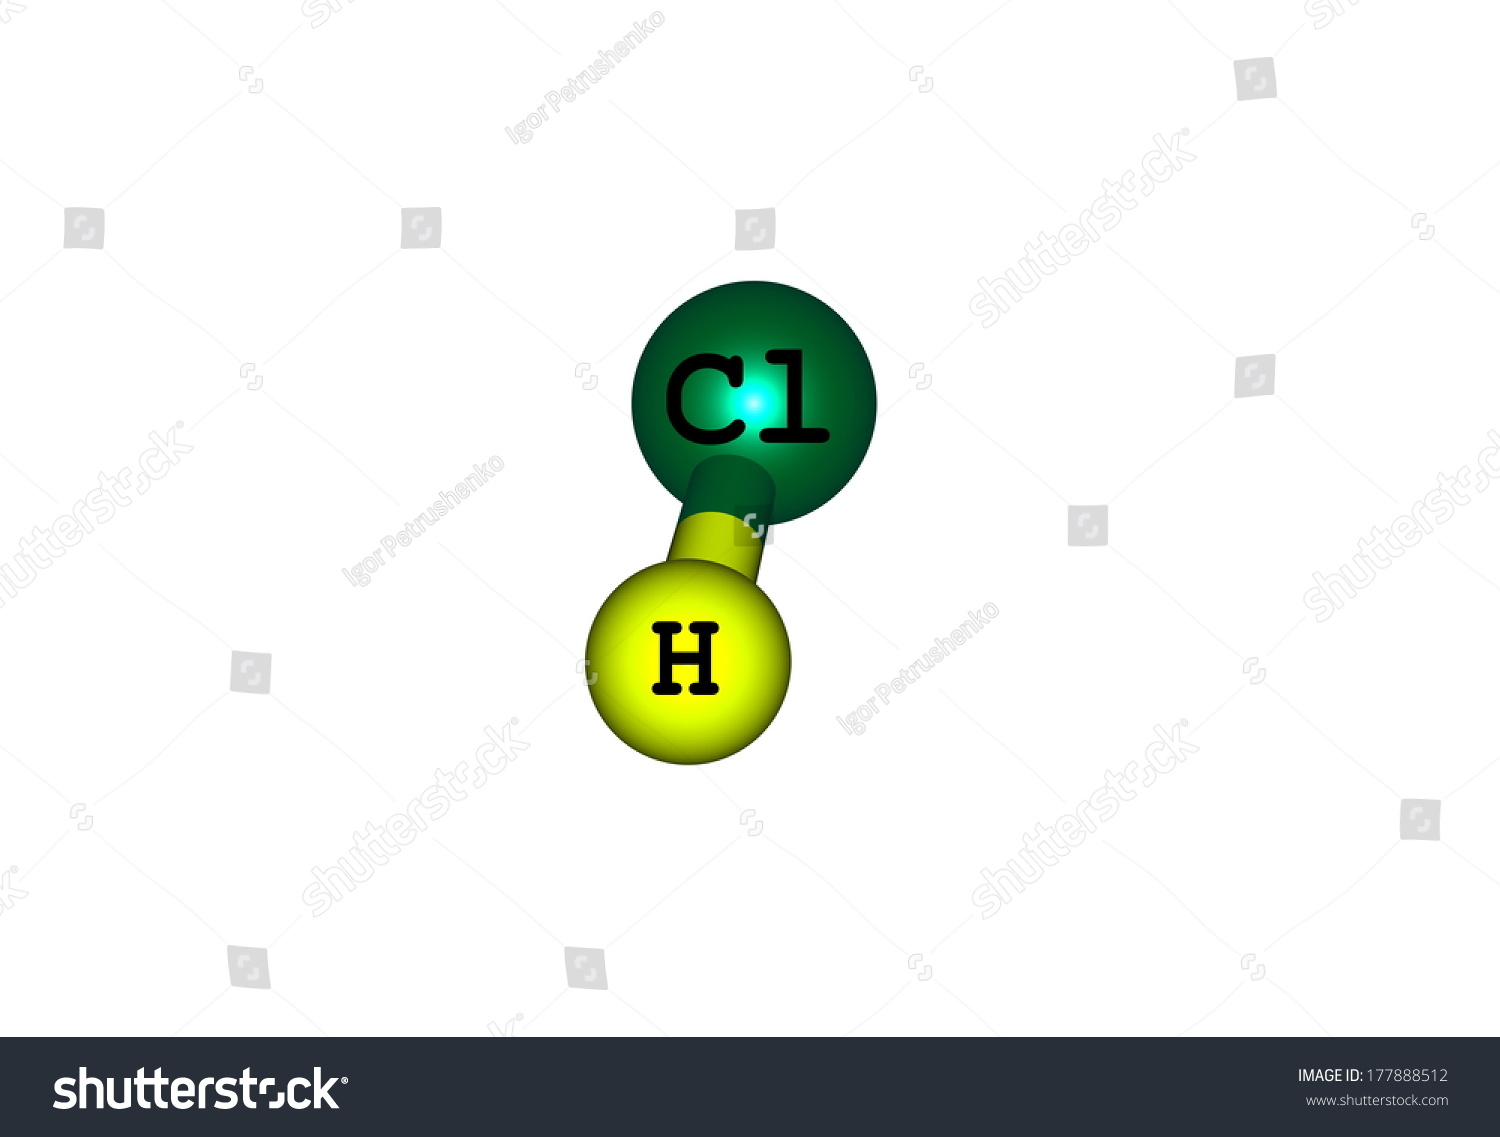 Compound hydrogen chloride has chemical formula stock illustration the compound hydrogen chloride has the chemical formula hcl at room temperature it is buycottarizona Choice Image